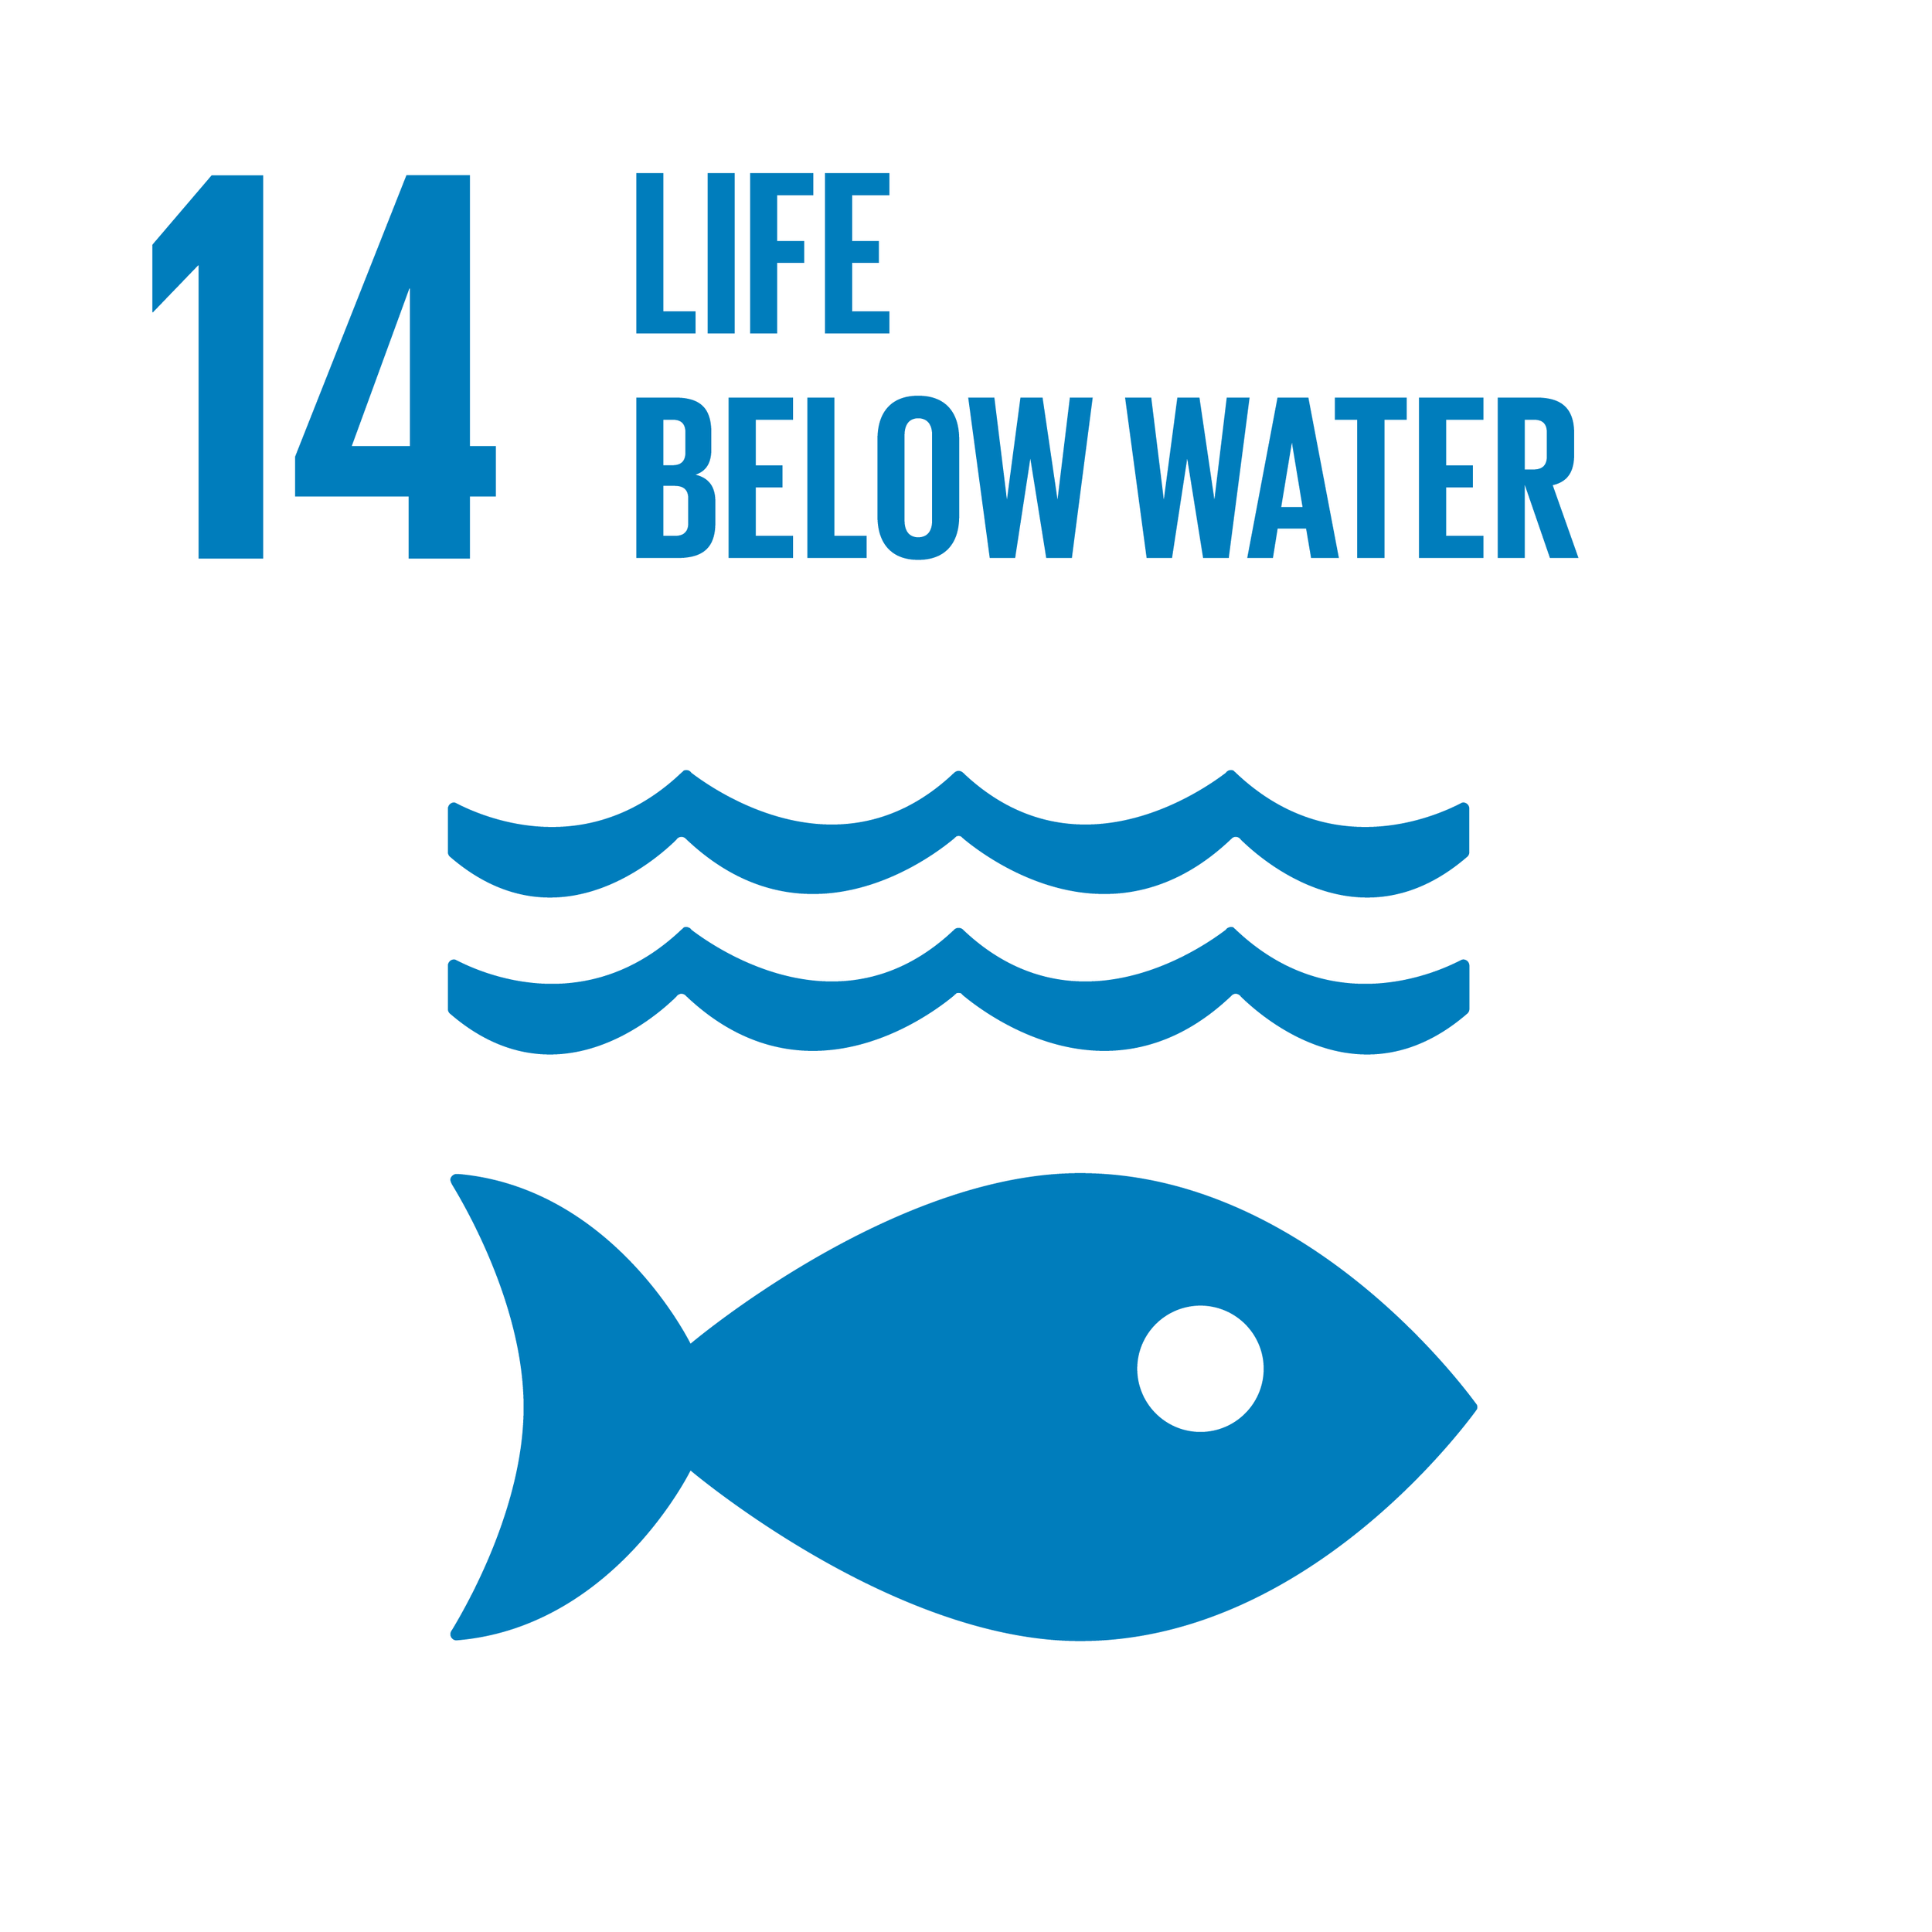 E_INVERTED SDG goals_icons-individual-RGB-14.png